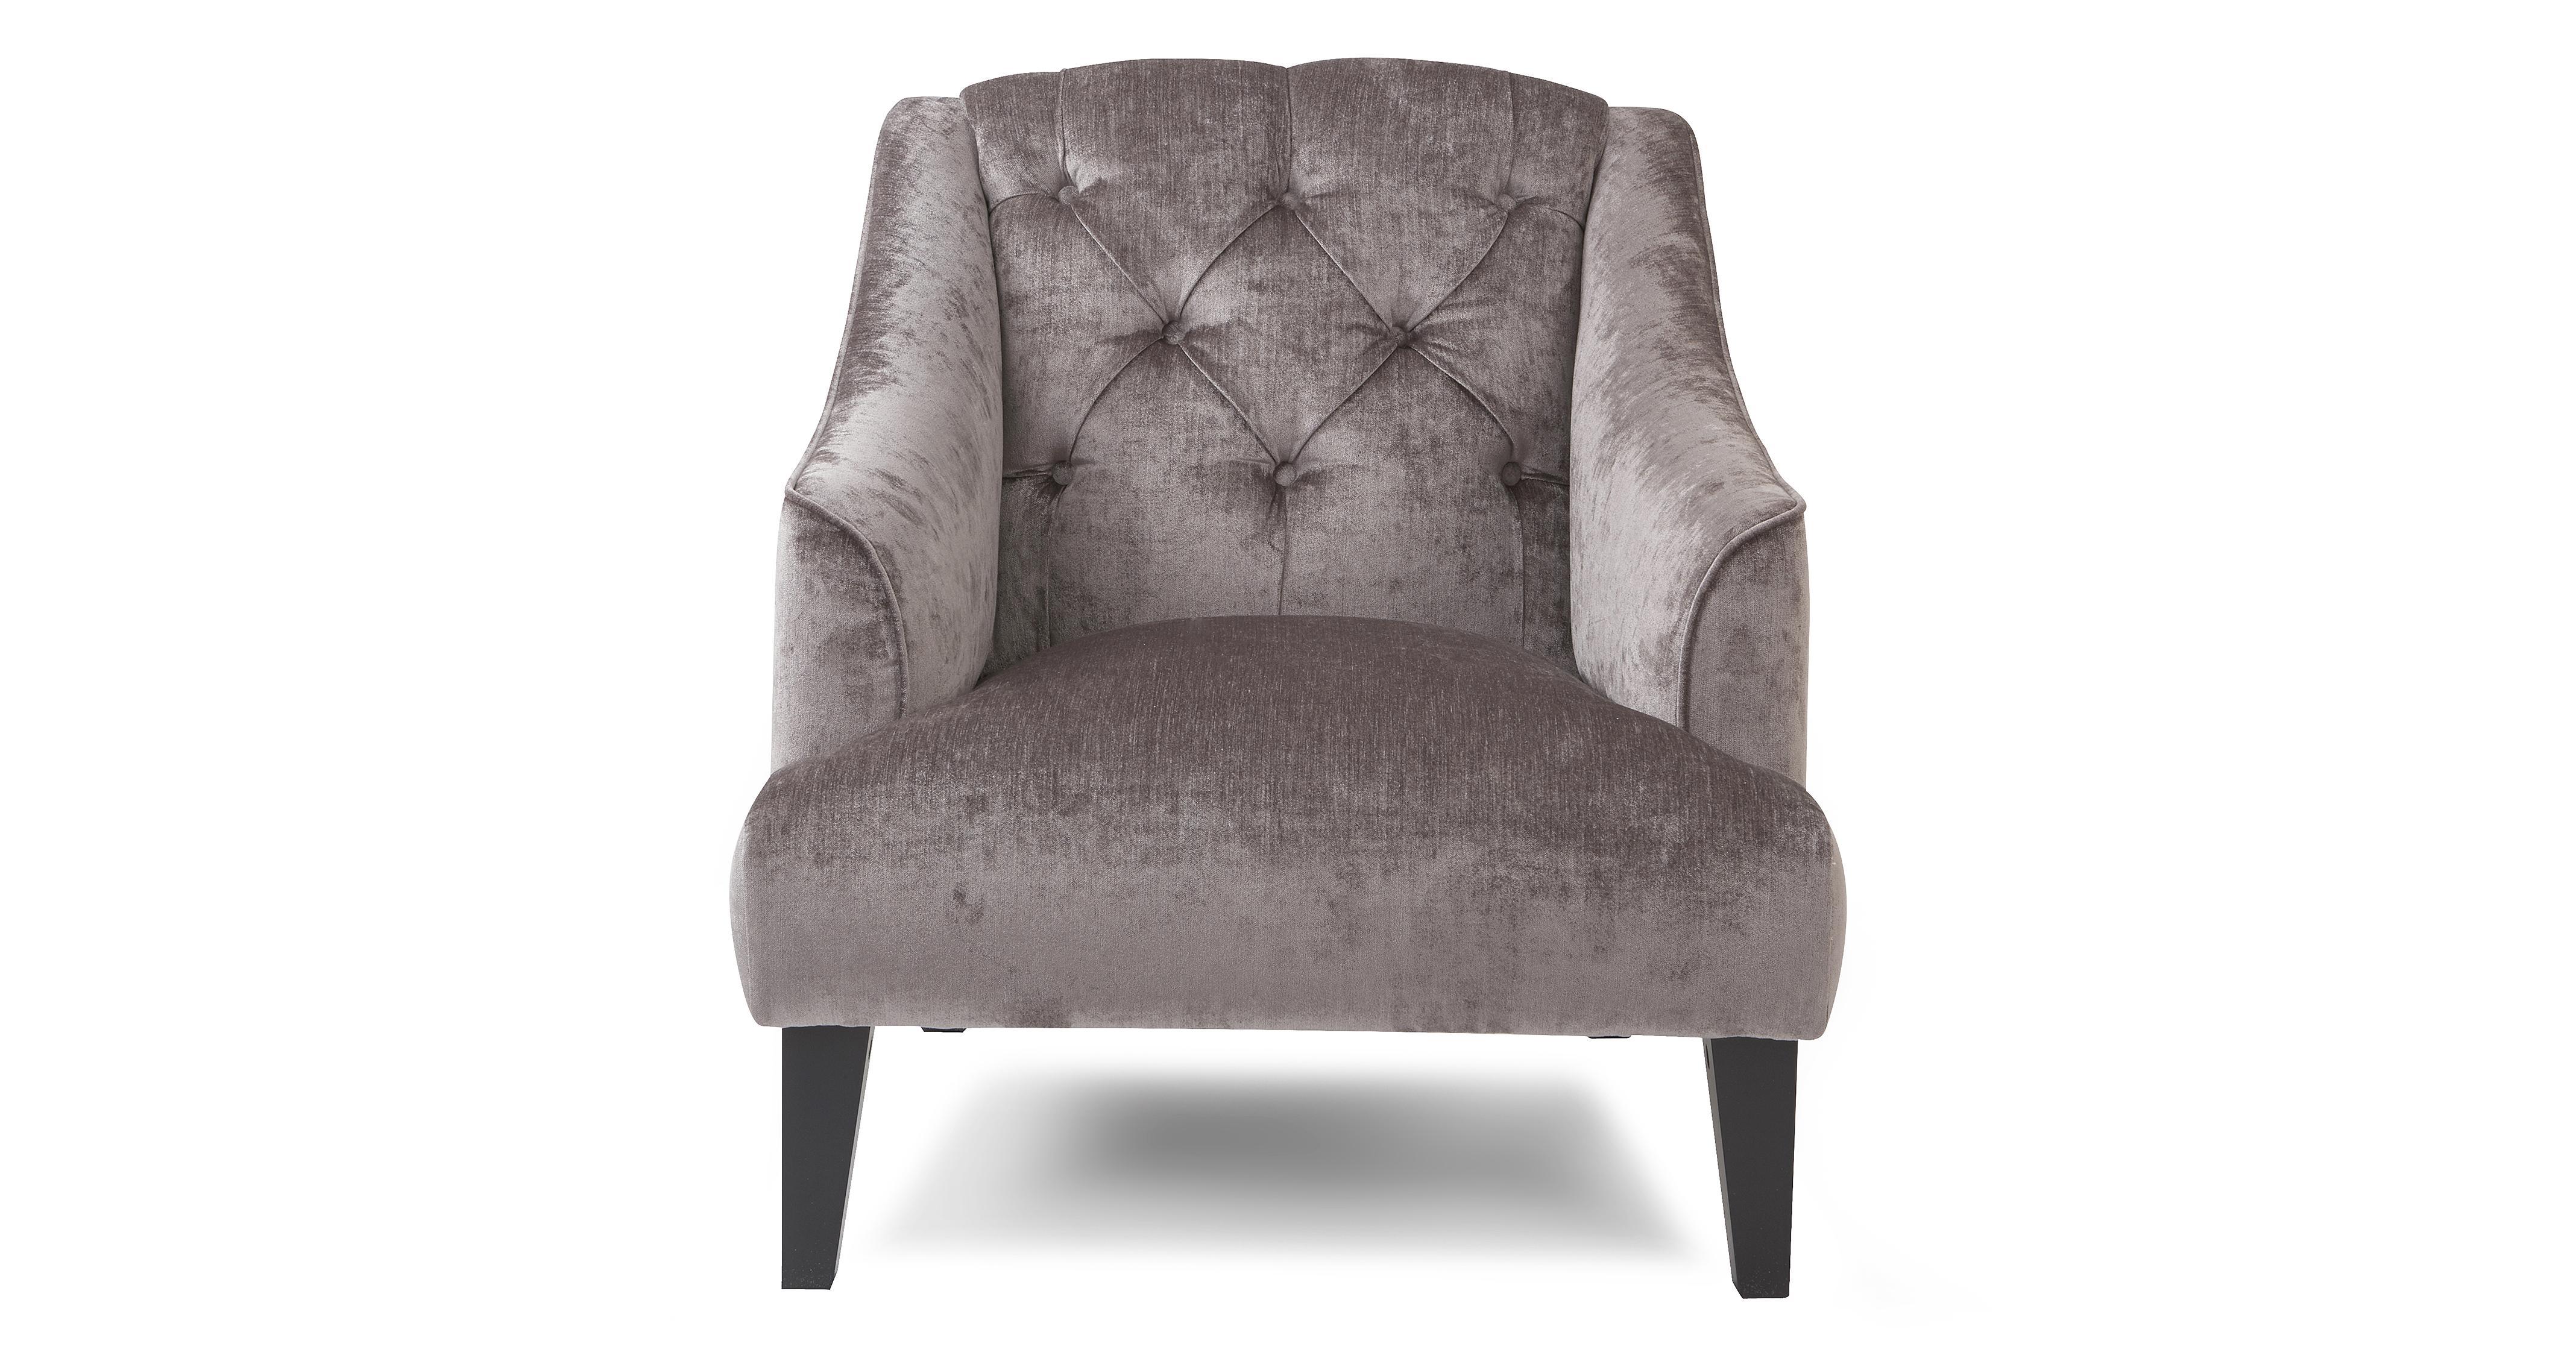 Occasional Chairs For Bedroom Bedroom Chairs In Modern Traditional Styles Dfs